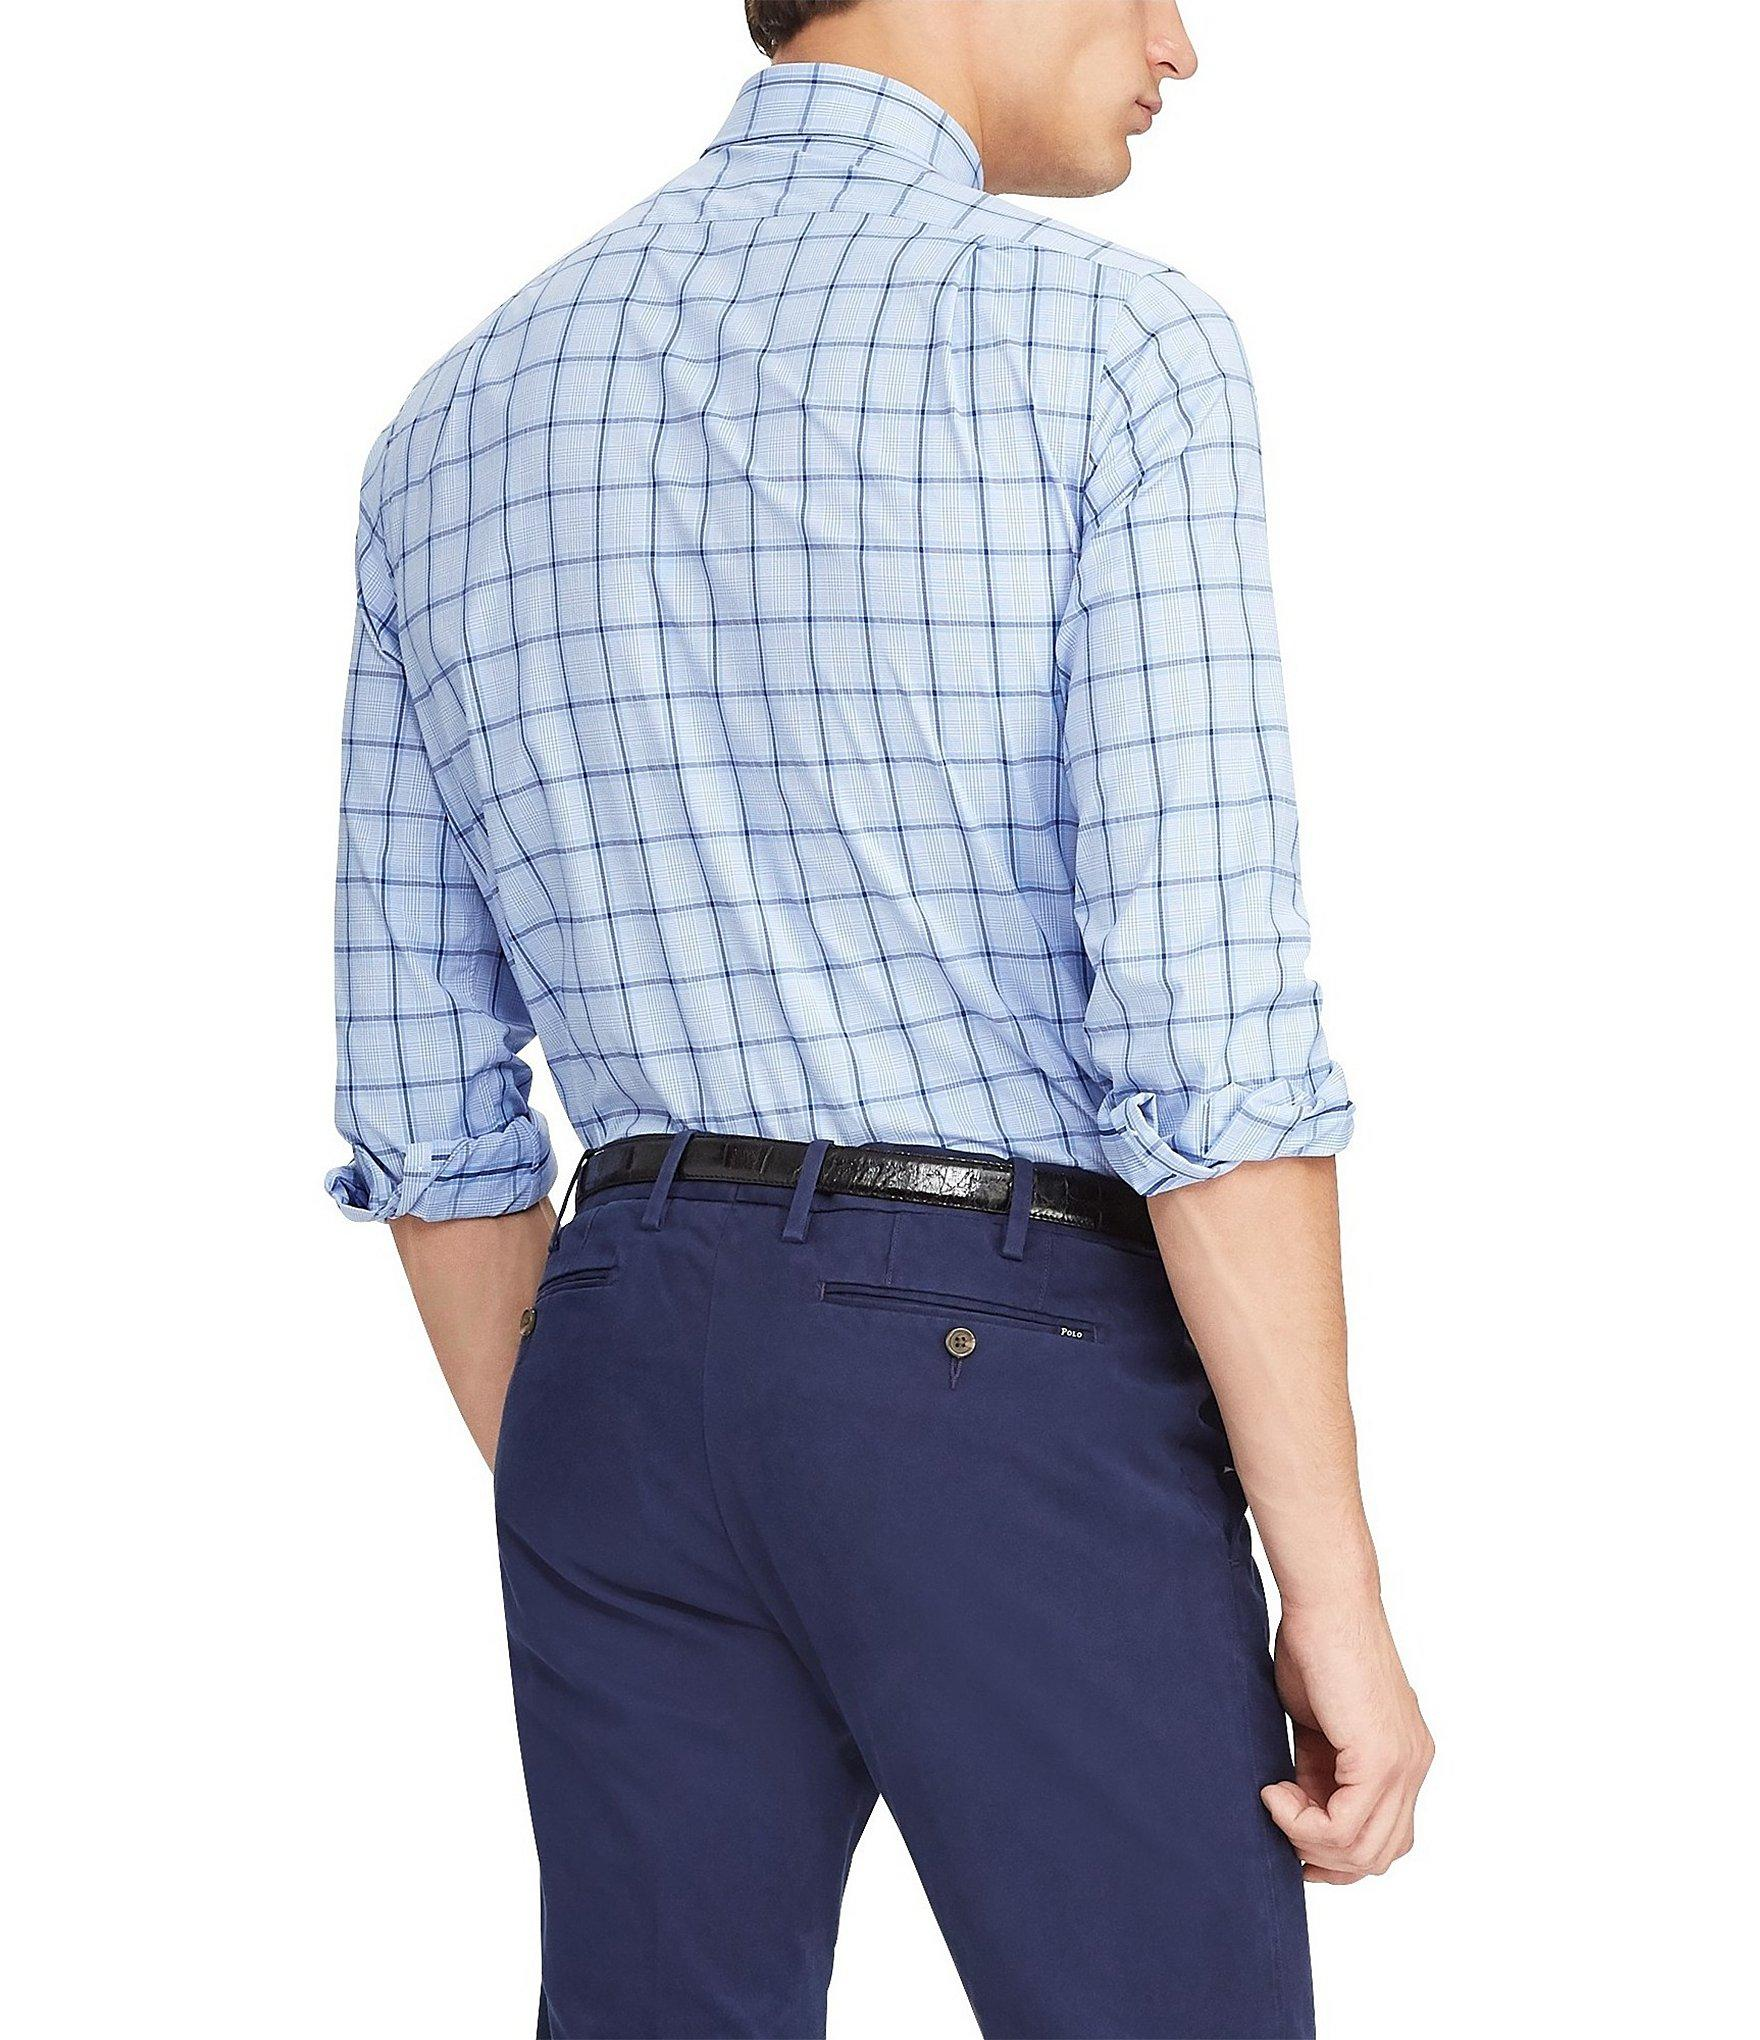 6ad14f4c39f3 Polo Ralph Lauren - Blue Large Check Performance Twill Long-sleeve Woven  Shirt for Men. View fullscreen